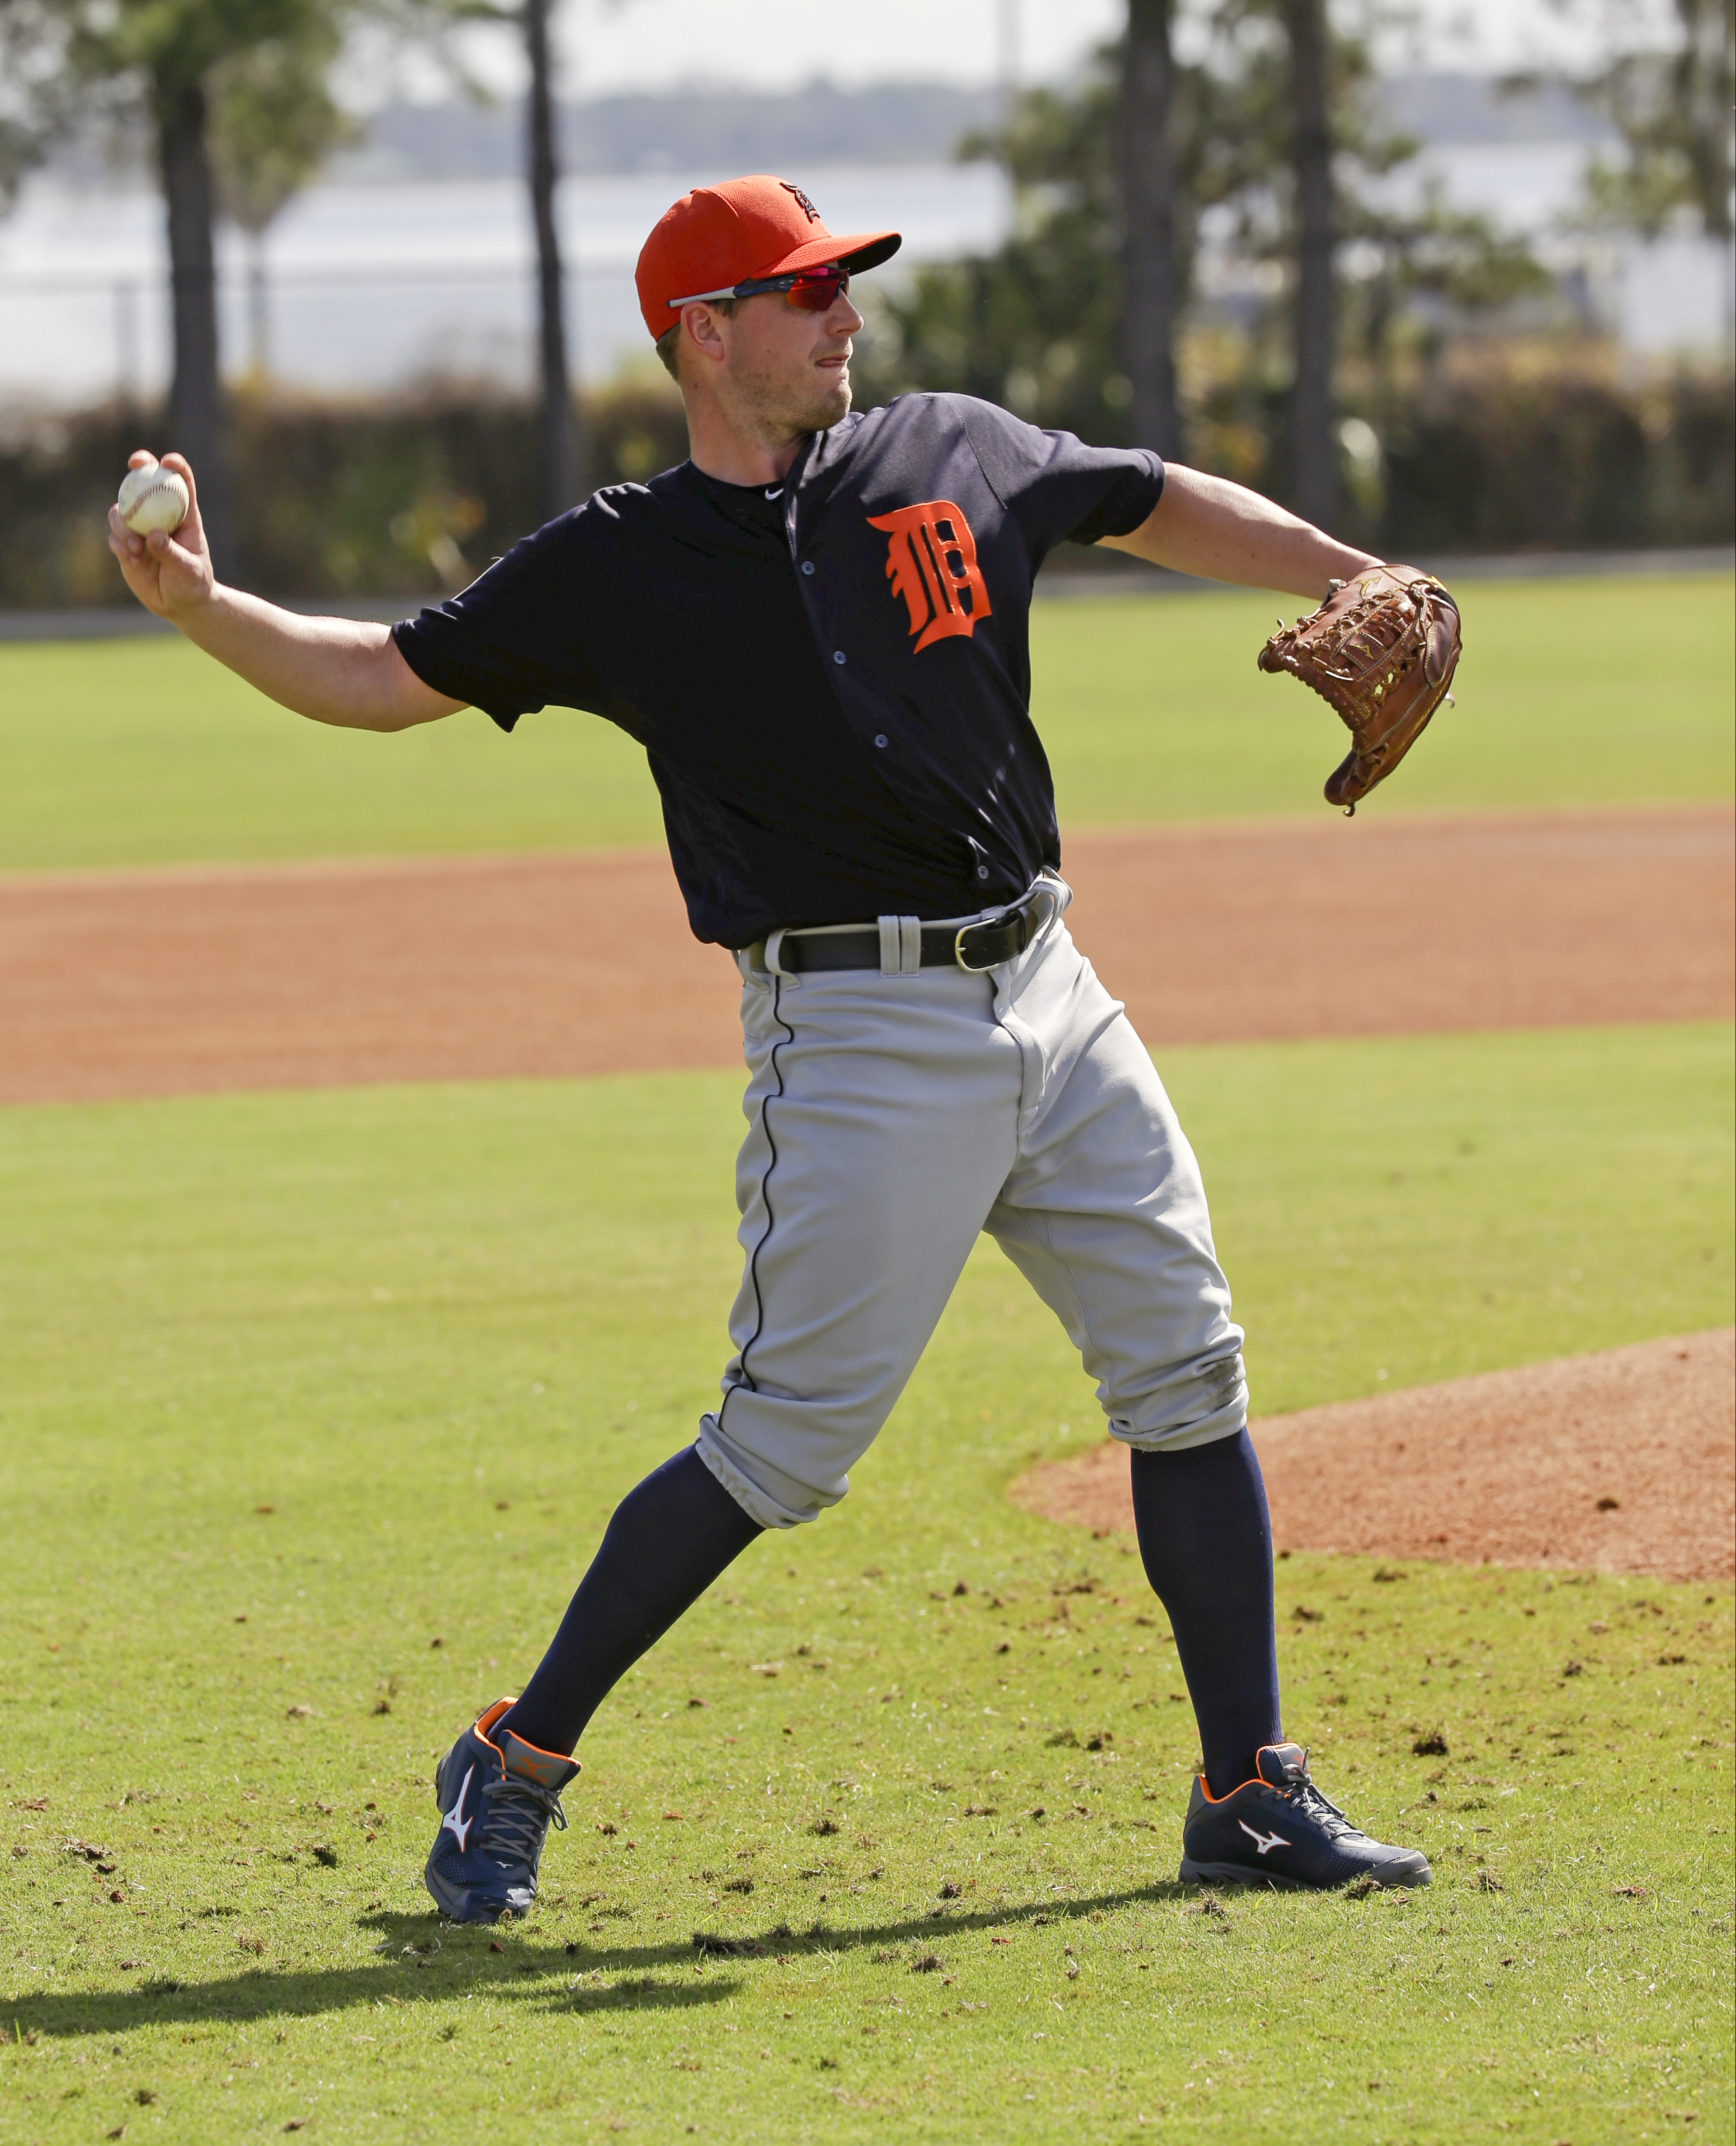 Detroit Tigers starting pitcher Jordan Zimmermann throws to first base during a drill at a spring training baseball workout, Monday, Feb. 22, 2016, in Lakeland, Fla. (AP Photo/John Raoux)